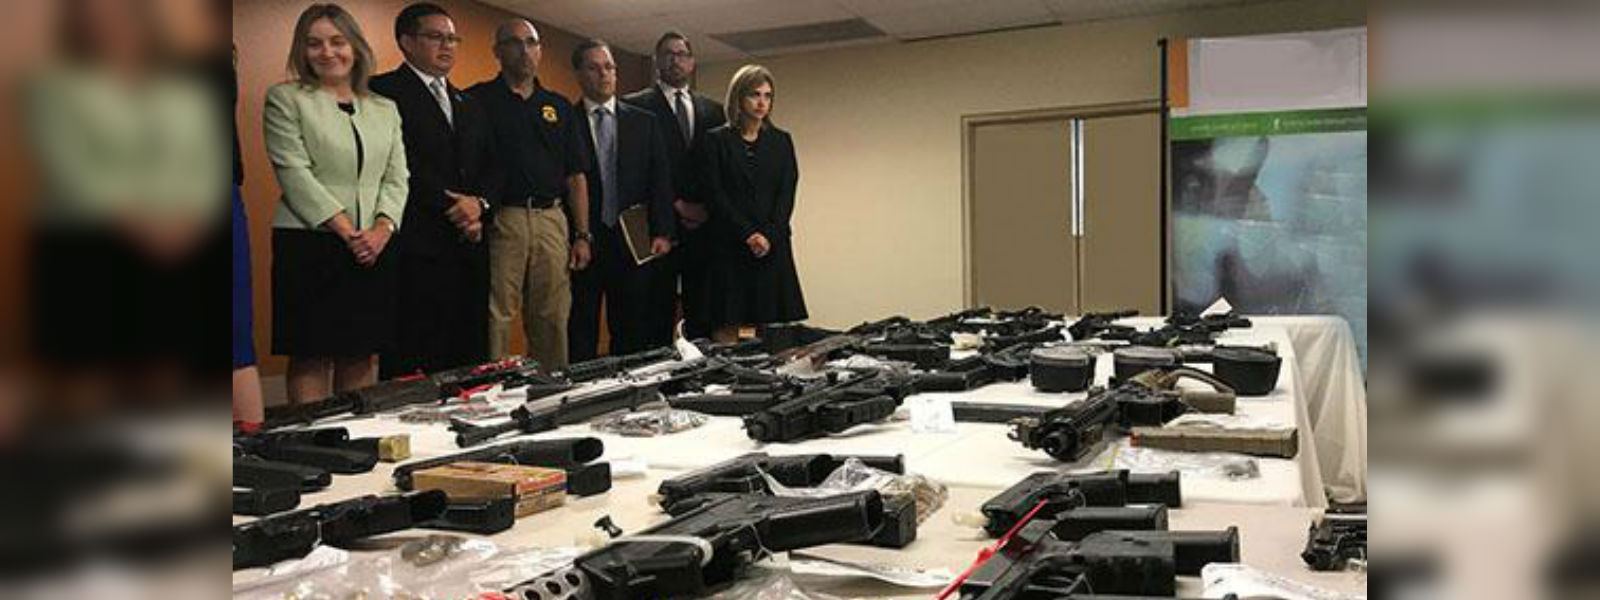 Argentina seizes thousands of guns in nationwide smuggling ring bust